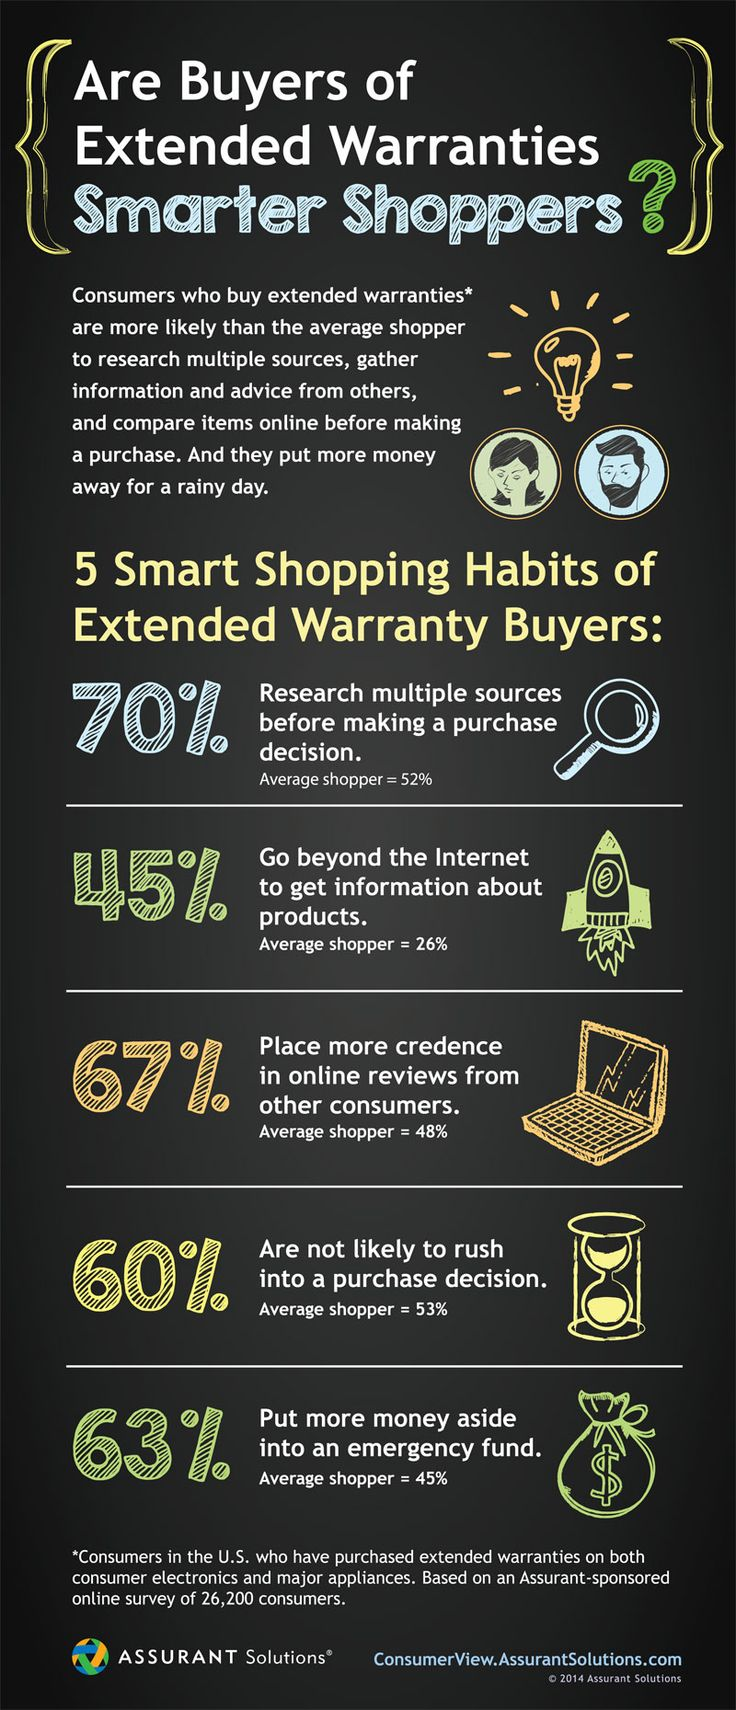 5 Smart Shopping Habits from Extended Warranty Buyers to use when purchasing consumer electronics or major appliances to ensure you get the best deal.